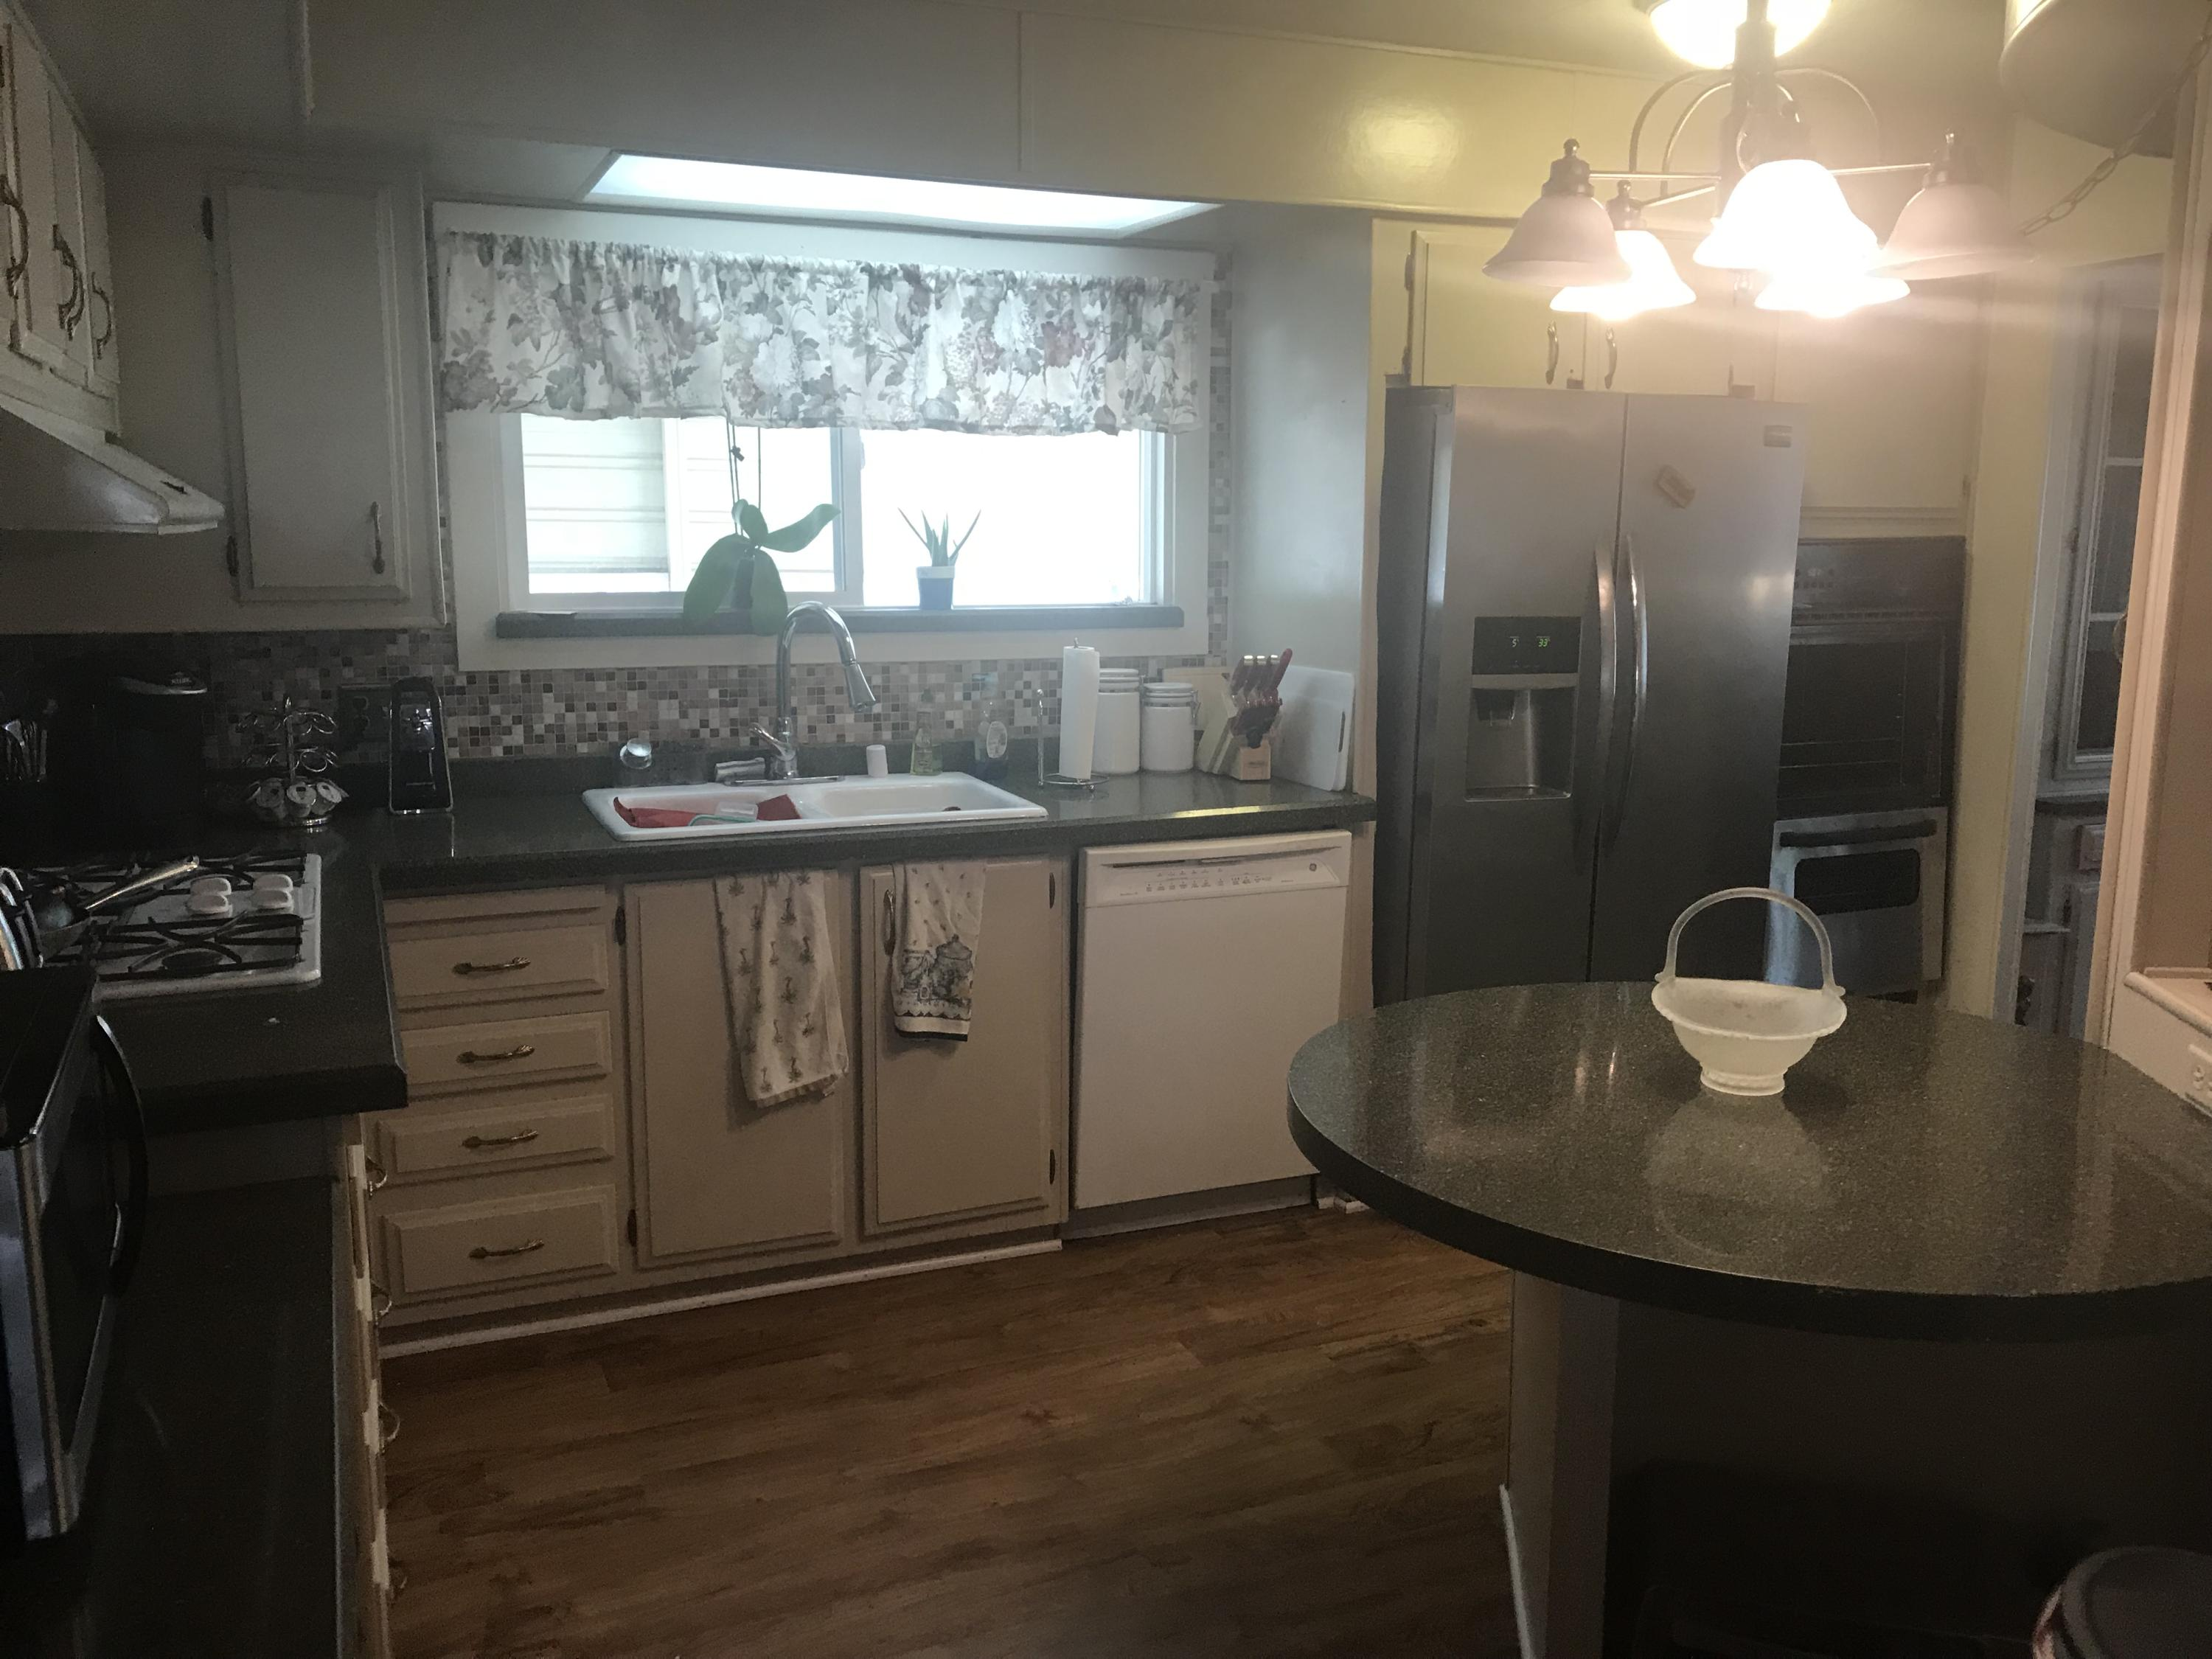 Nicely Updated Manufactured Home On Permanent Foundation In North Redding.  Laminate Floors Throughout, Granite Countertops In Kitchen.